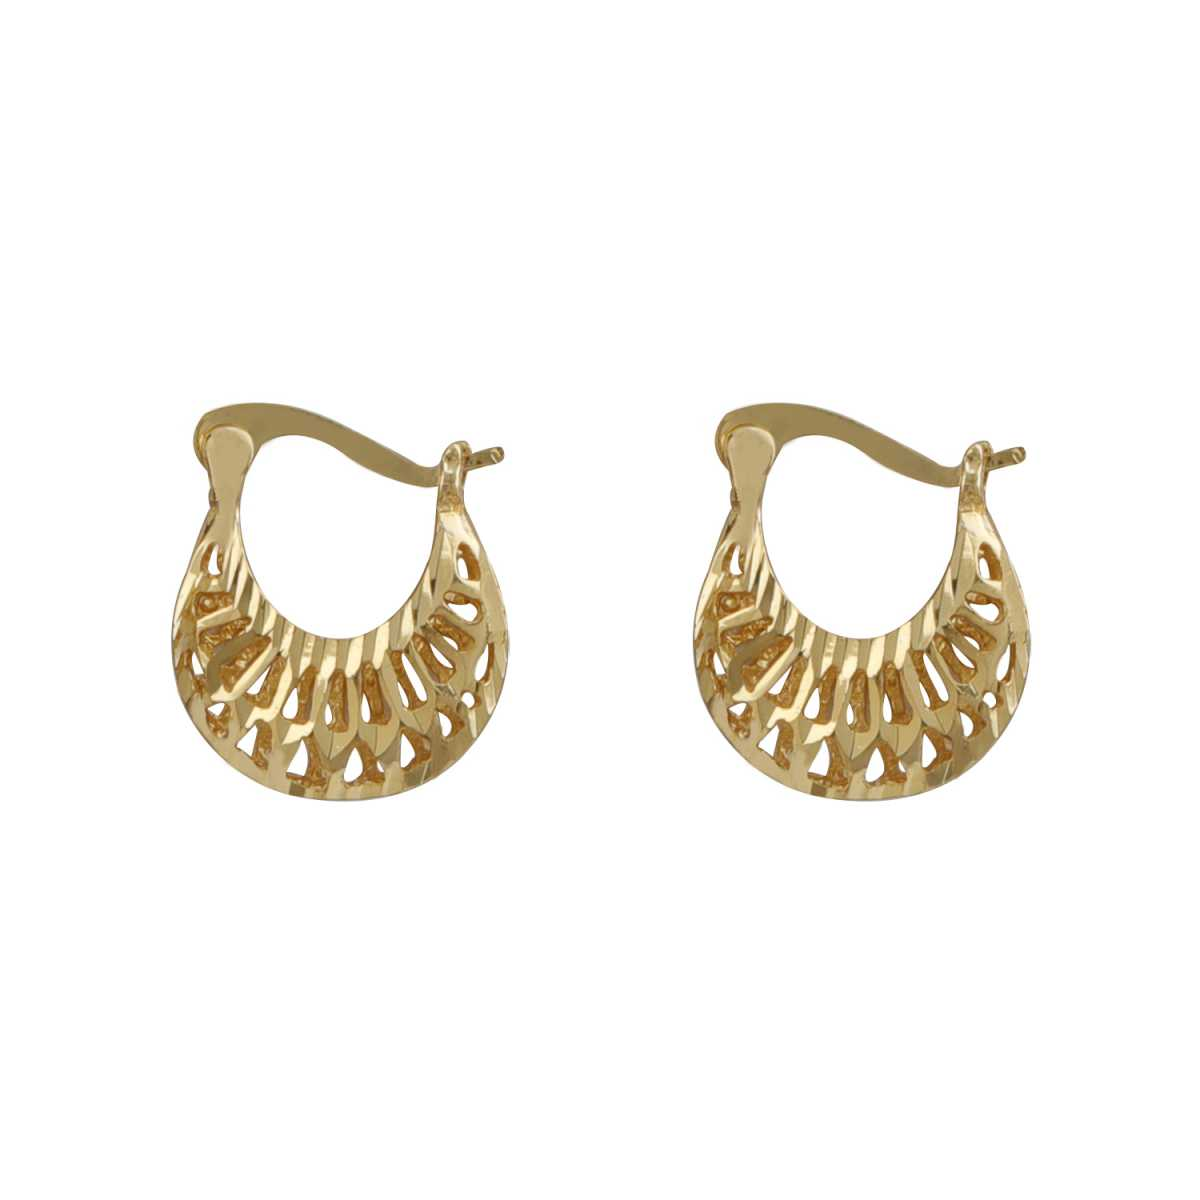 Silver Shine Graceful Gold Pretty Polished Small Hollow Design Hoop Bali Earring